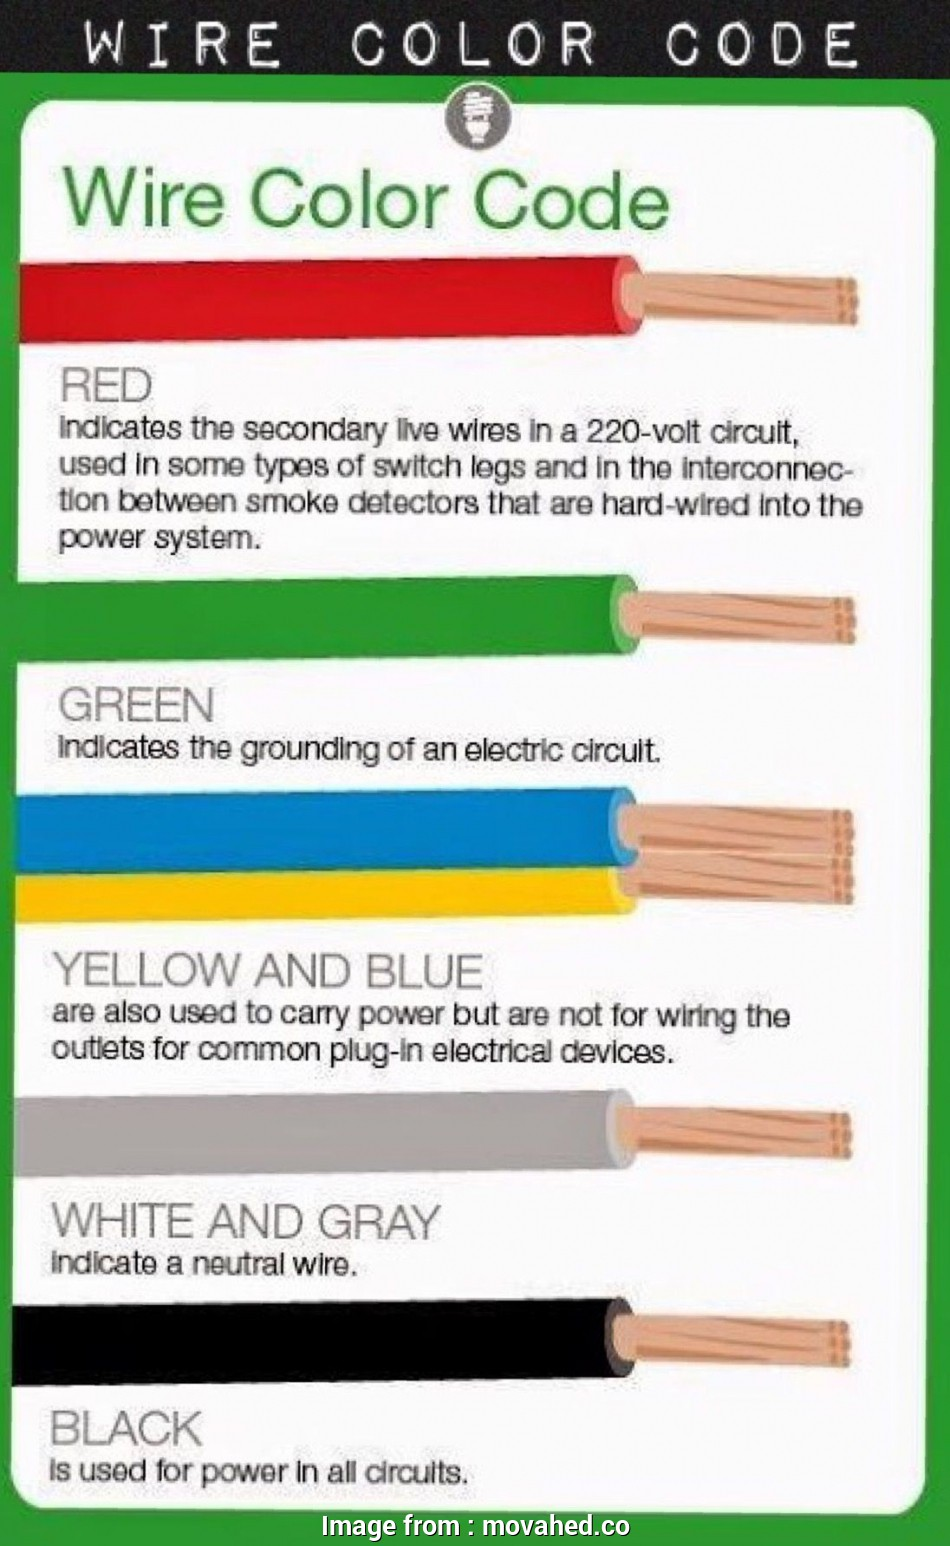 japan electrical wire color code Color Code Electrical Wire Save Color Code System Refrence What Do Electrical Wire Color Codes Mean 20 Best Japan Electrical Wire Color Code Ideas